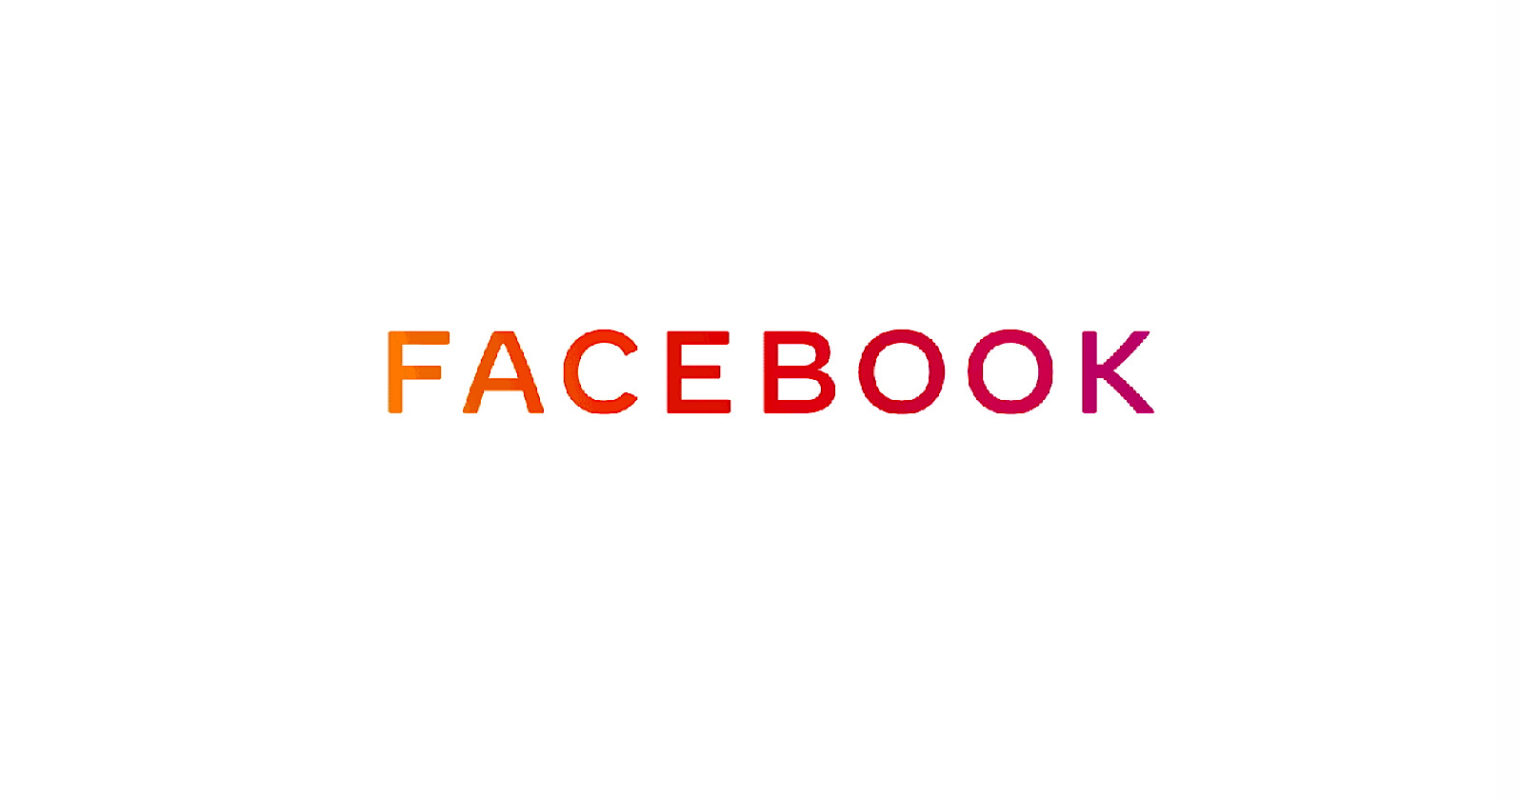 Facebook Unveils New Logo With Unique Branding for All of its Products